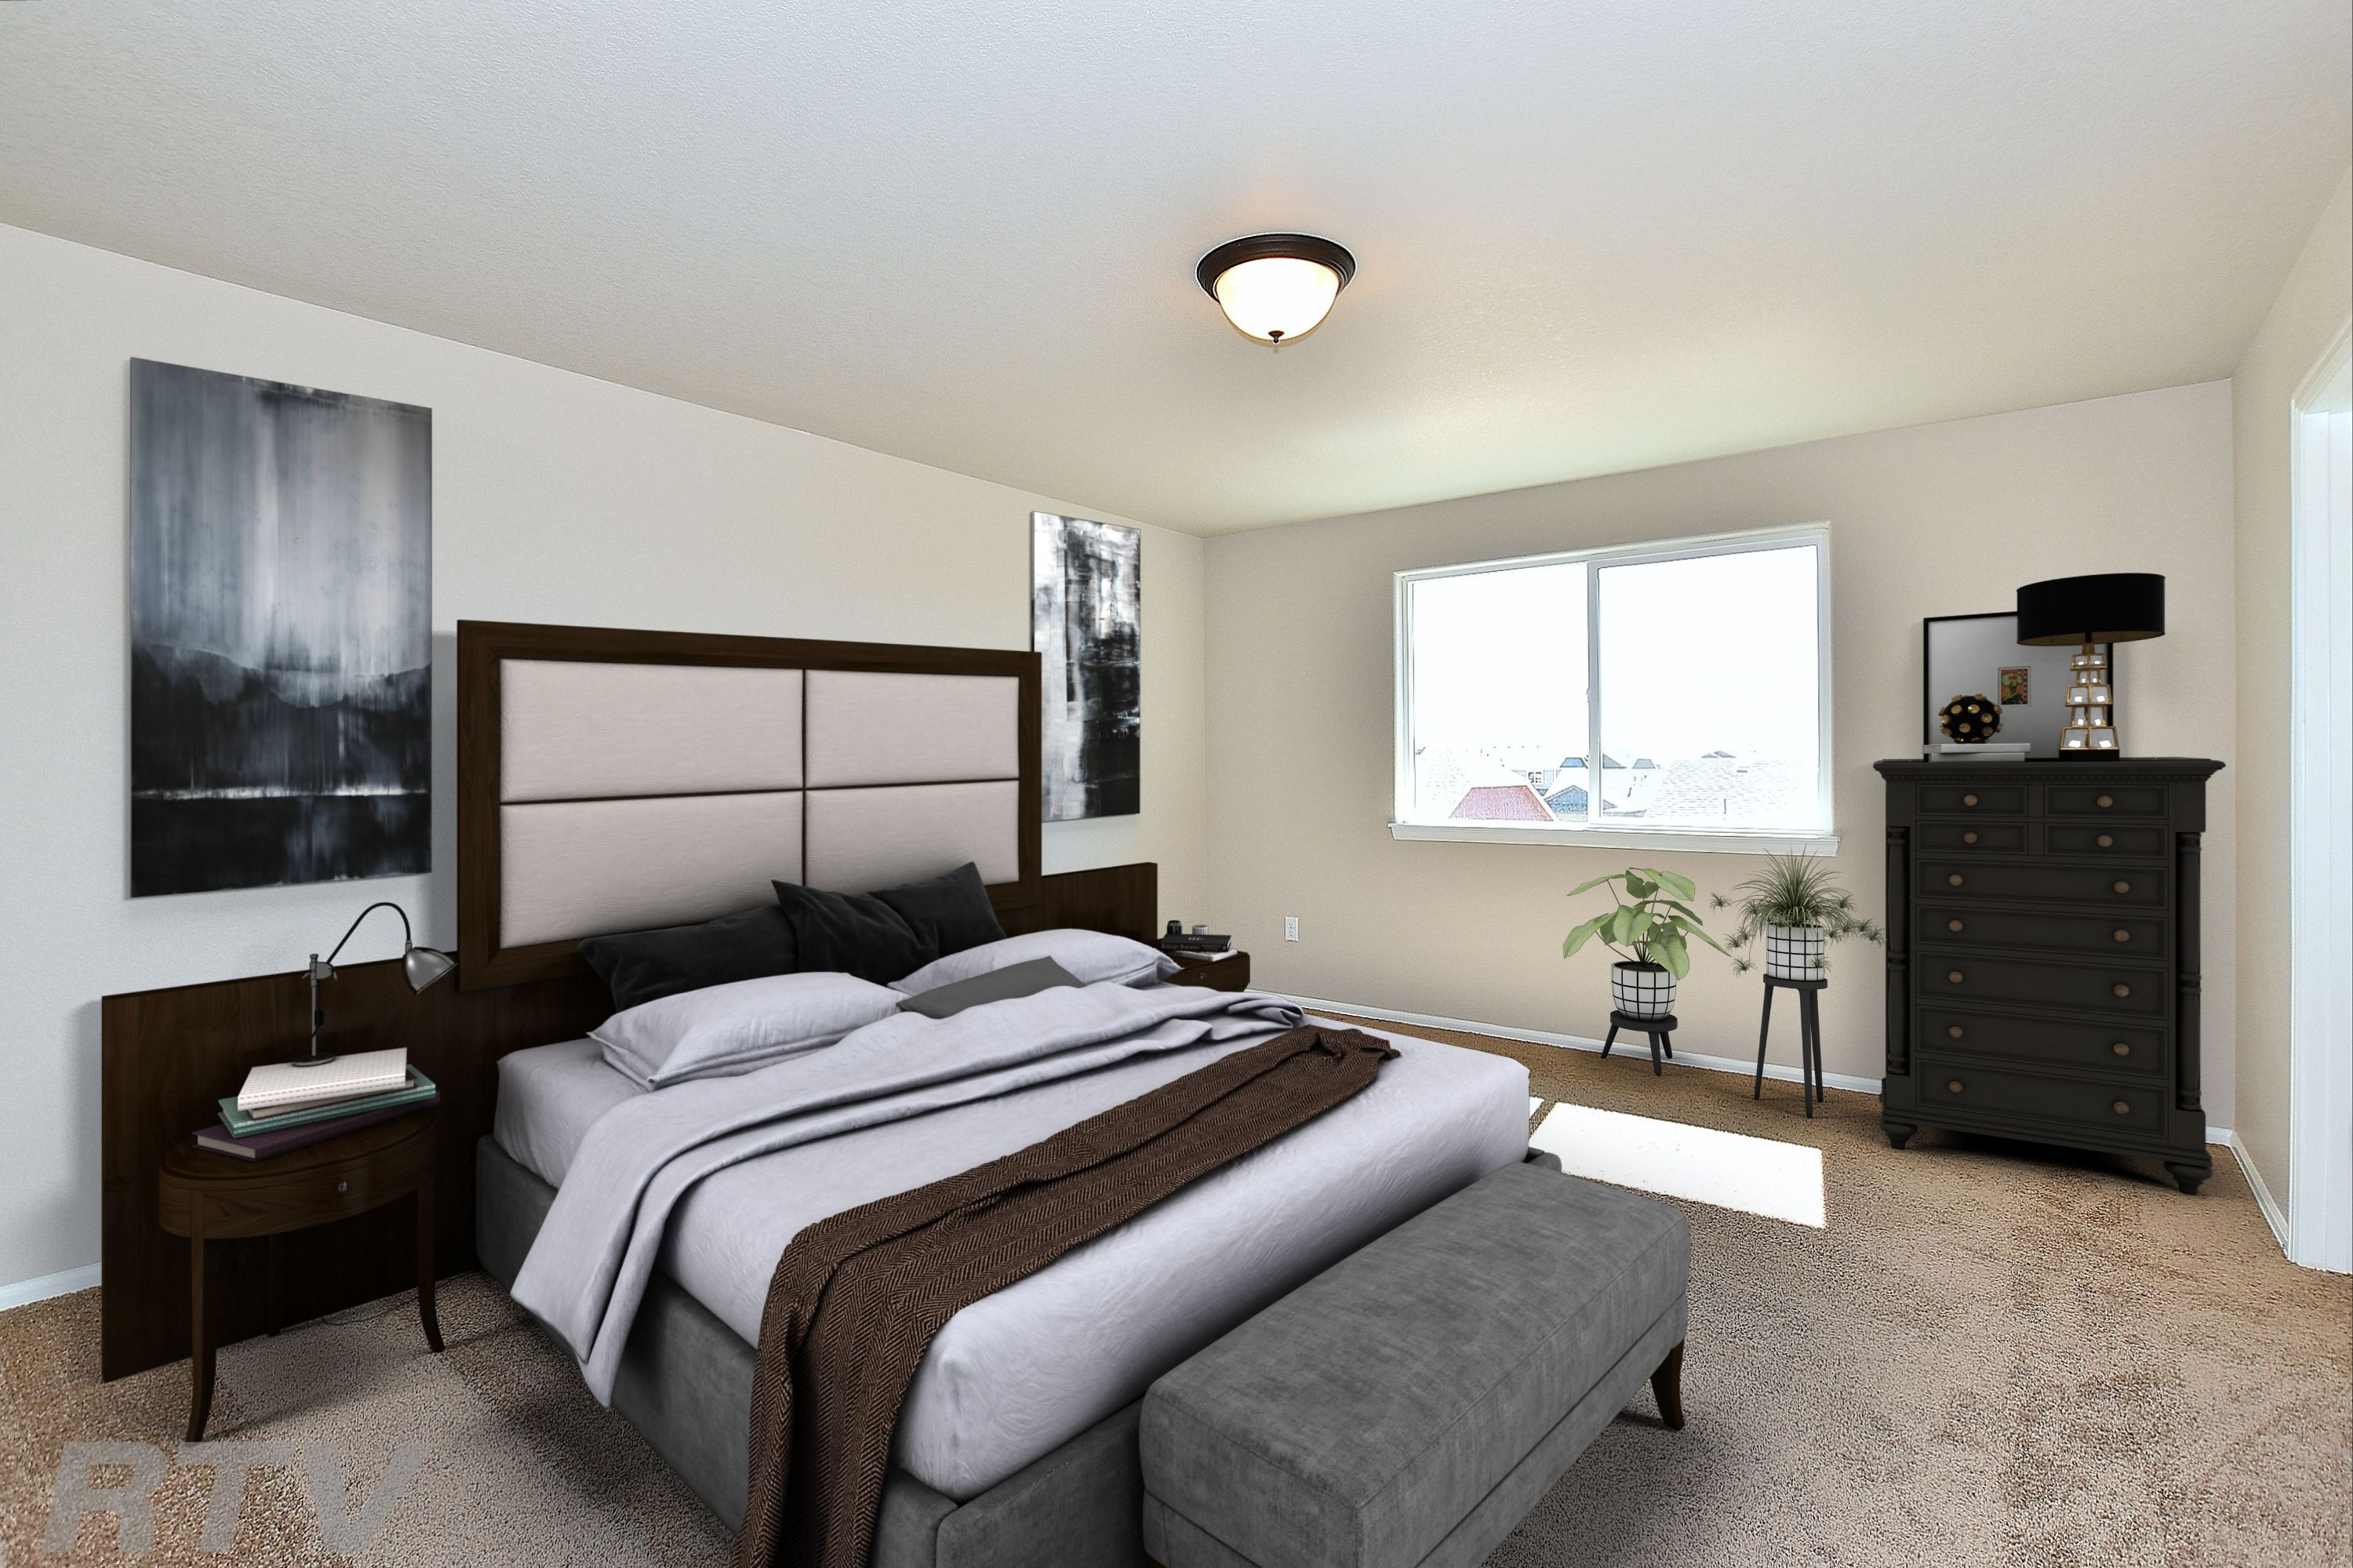 Bedroom featured in the Saratoga By Journey Homes in Greeley, CO